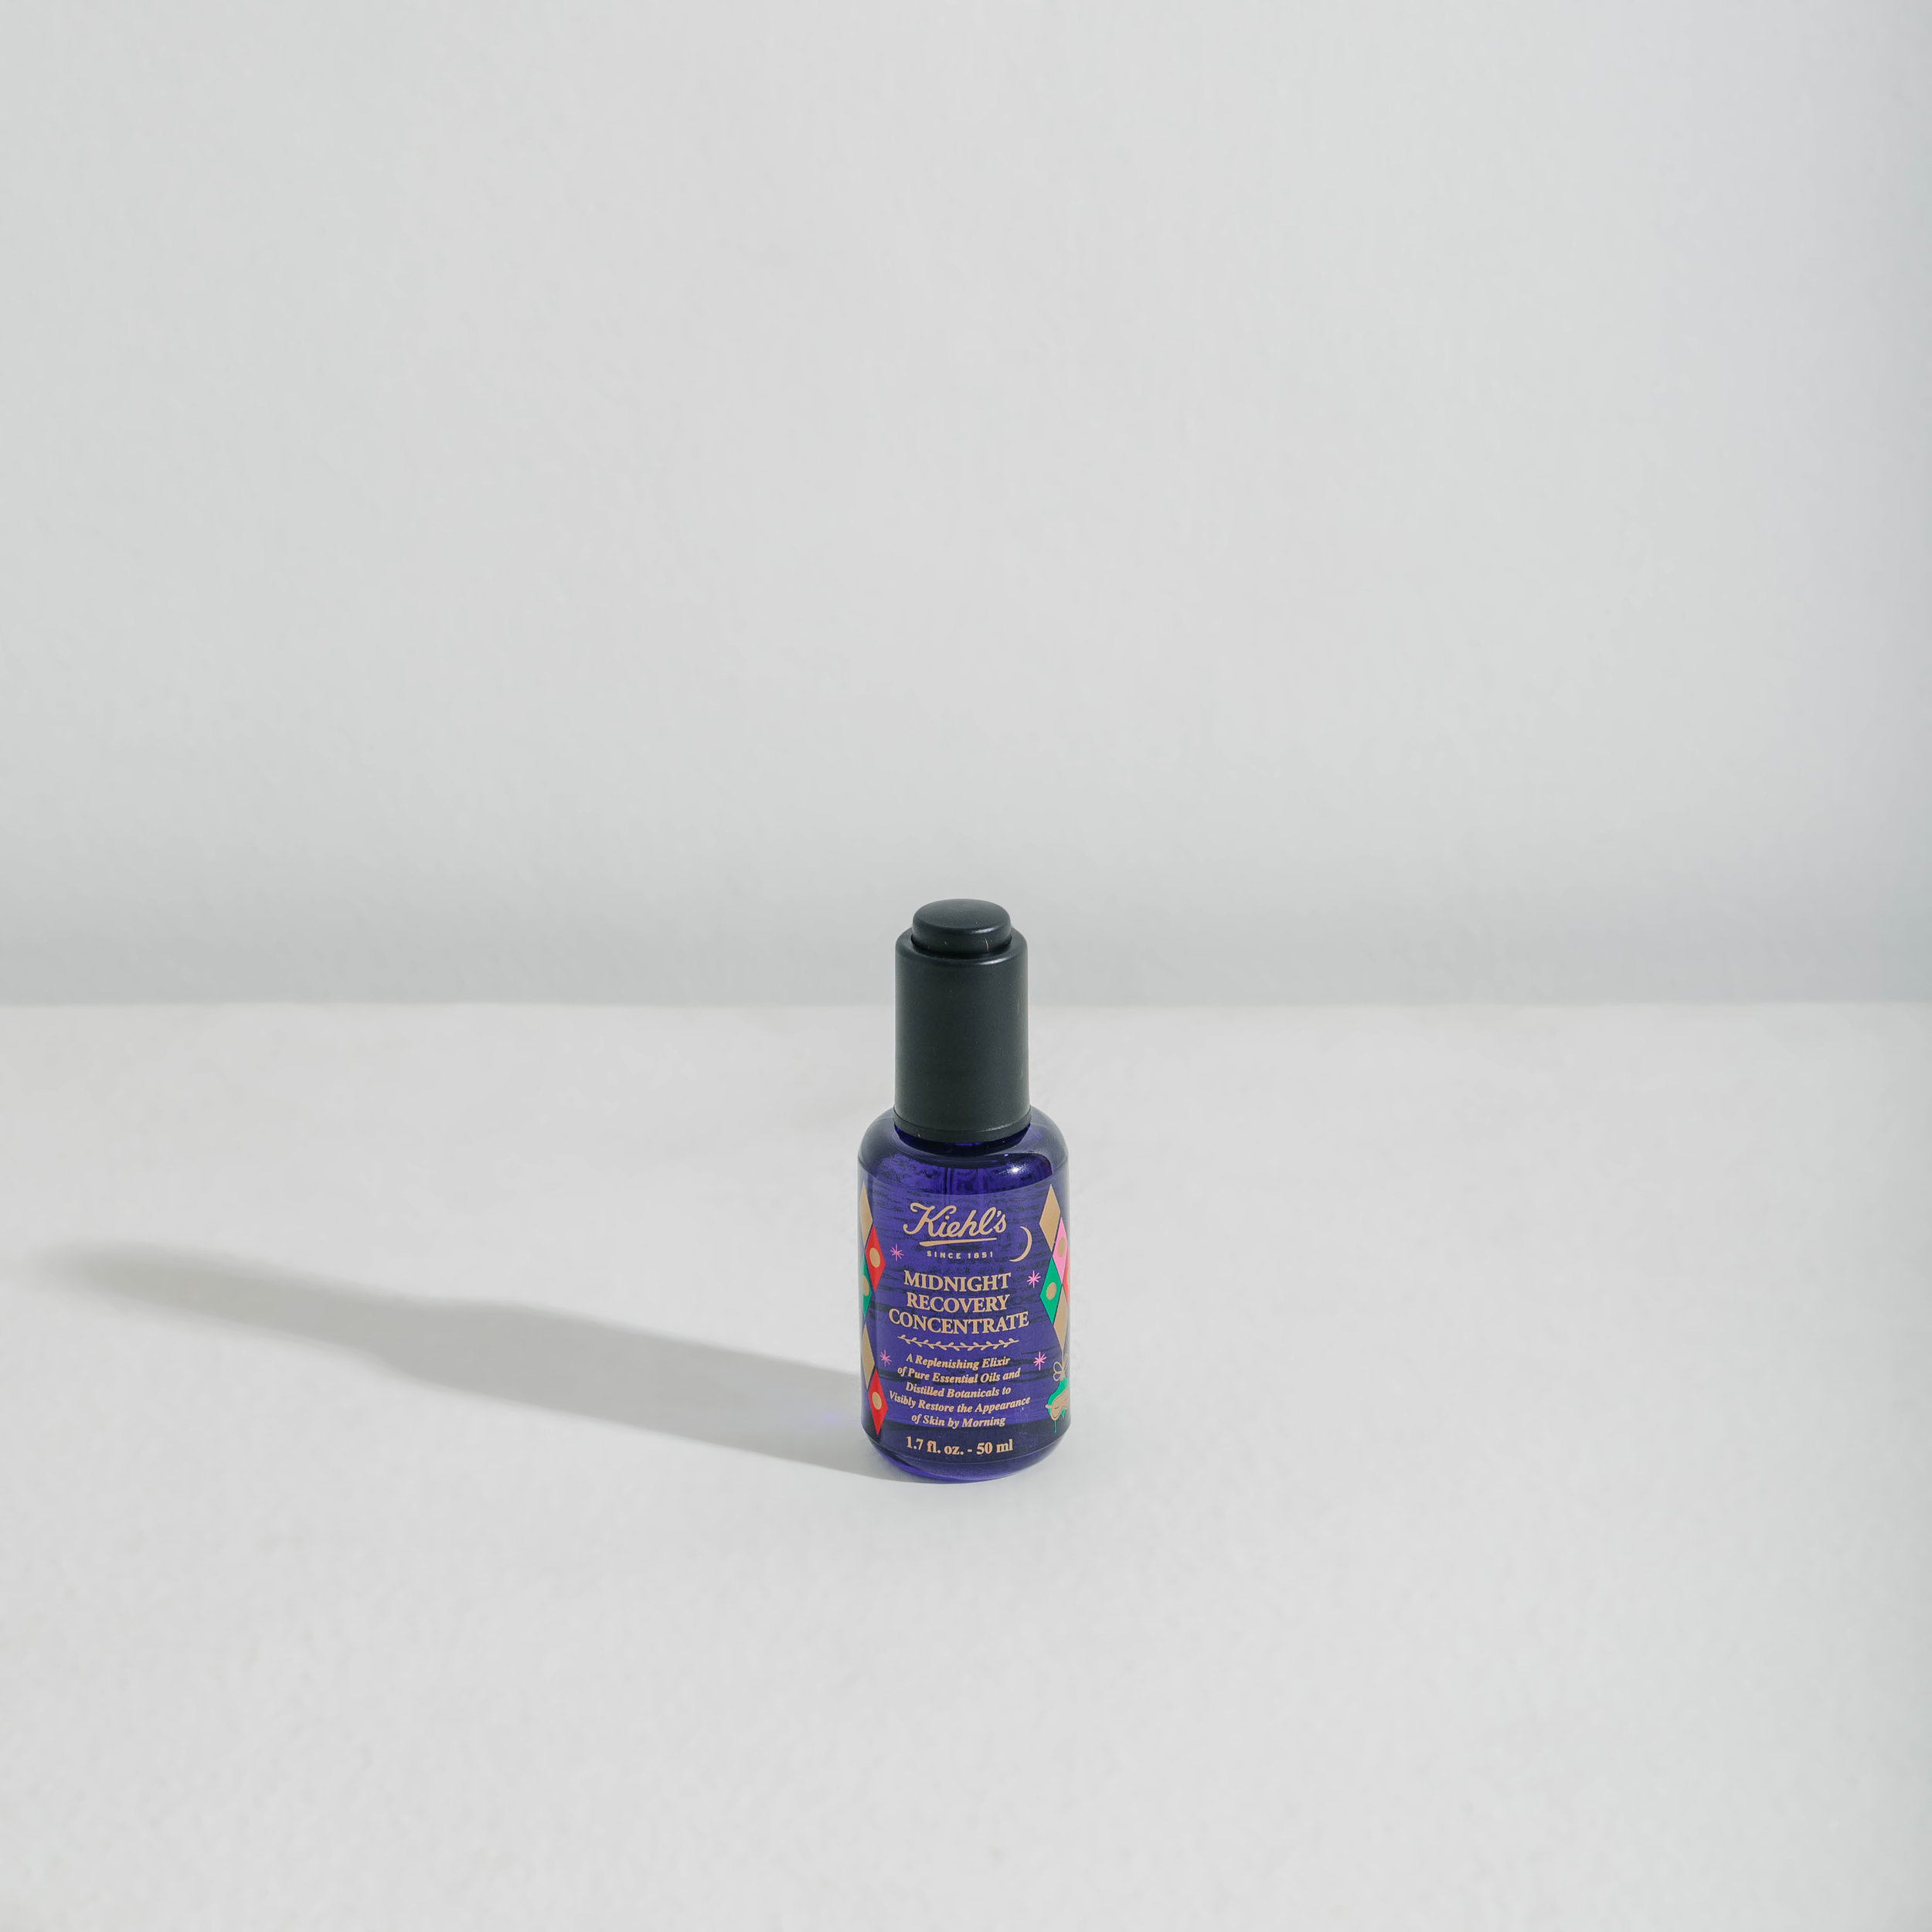 1. KIEHL'S Midnight Recovery Concentrate